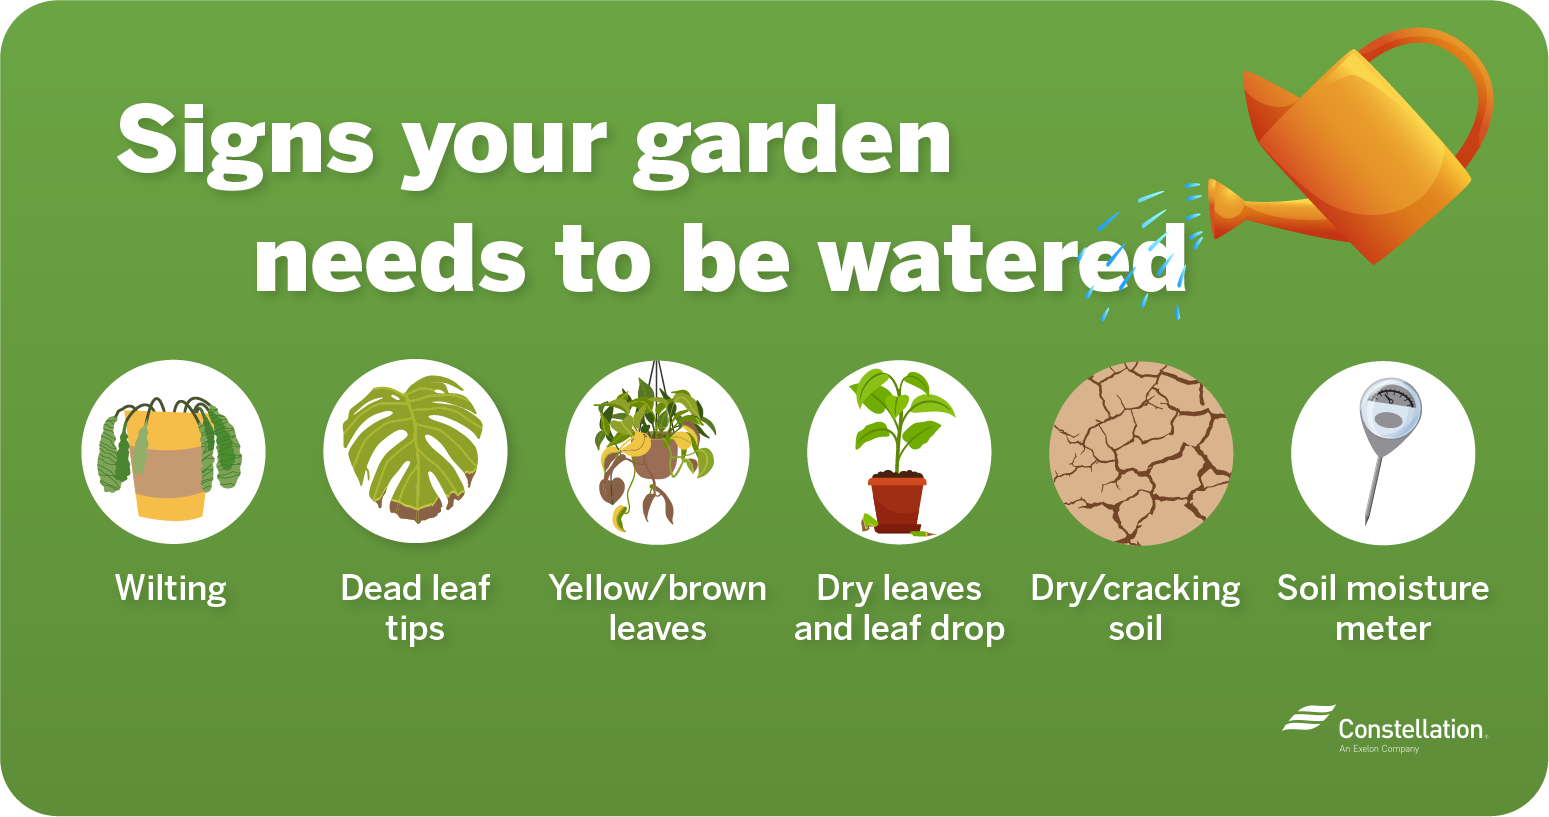 Signs your garden needs to be watered